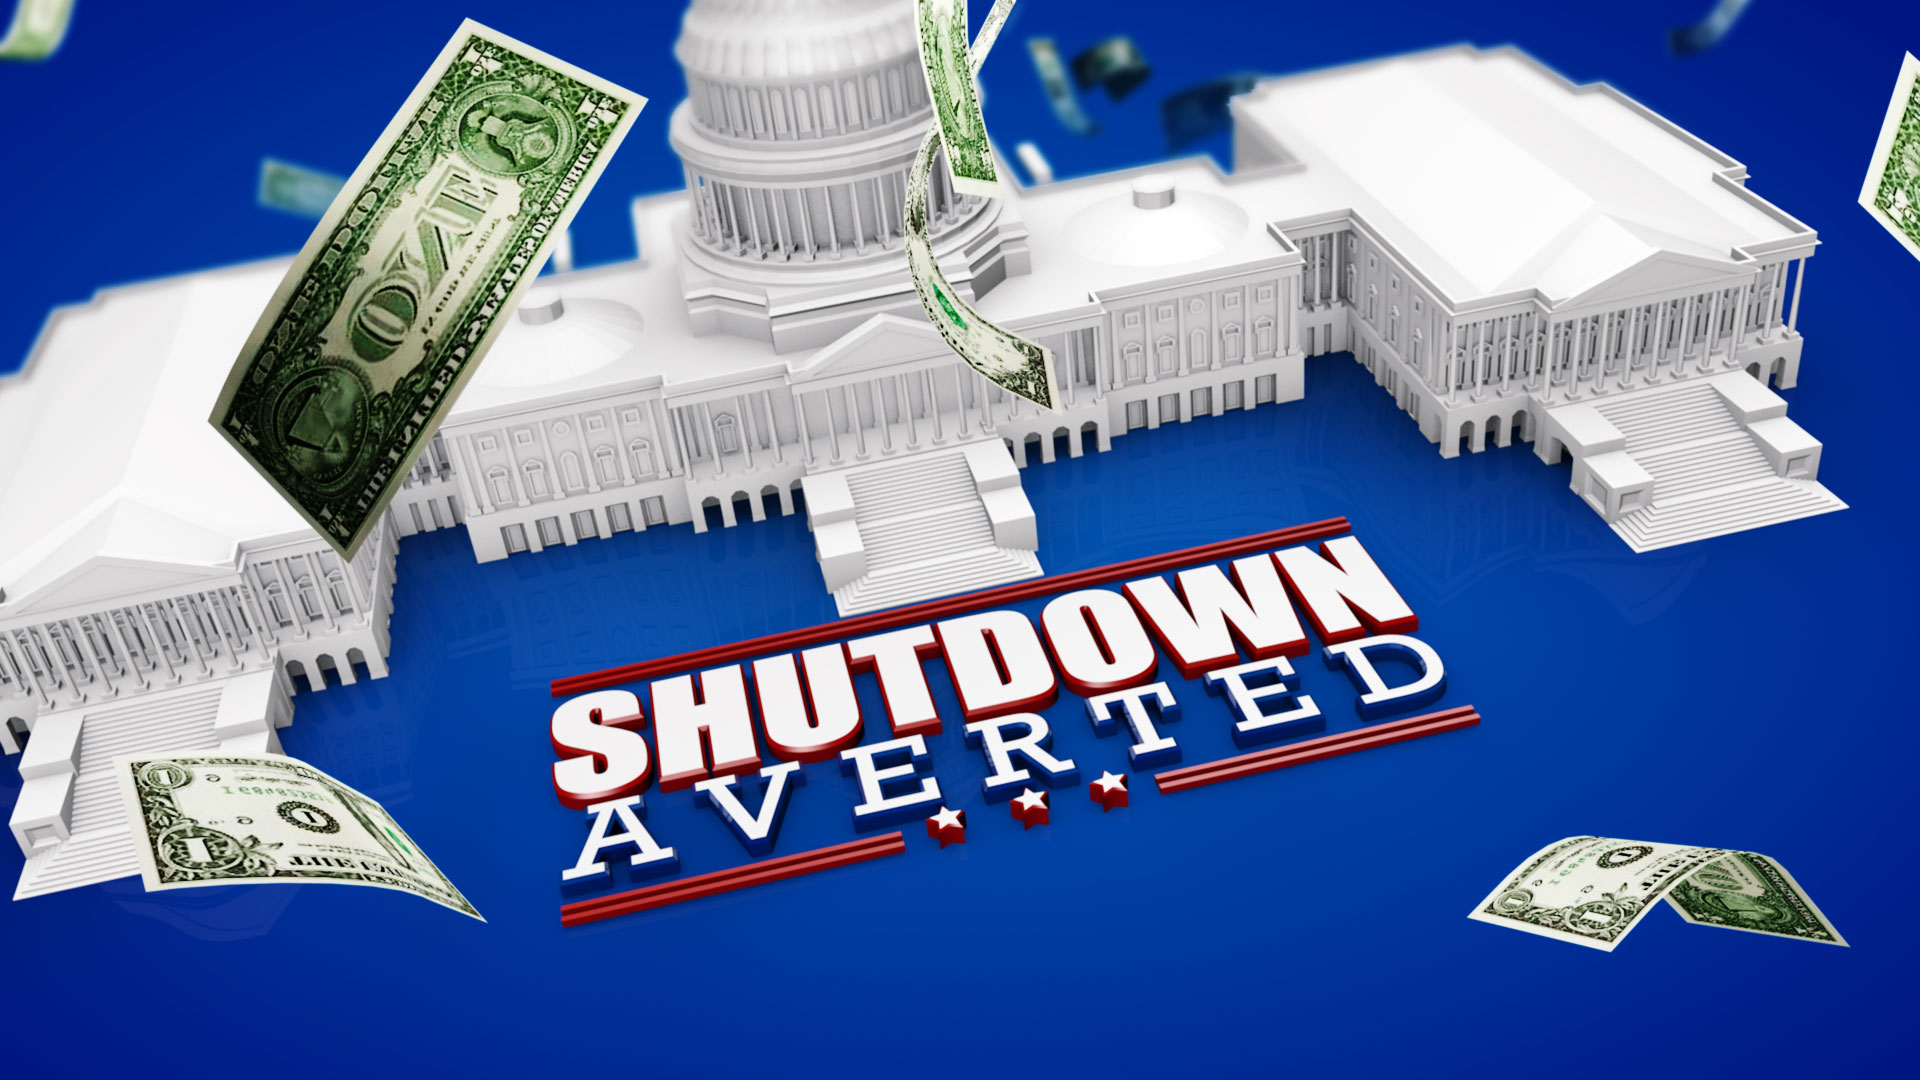 Government-Shutdown-Averted-092916-cc